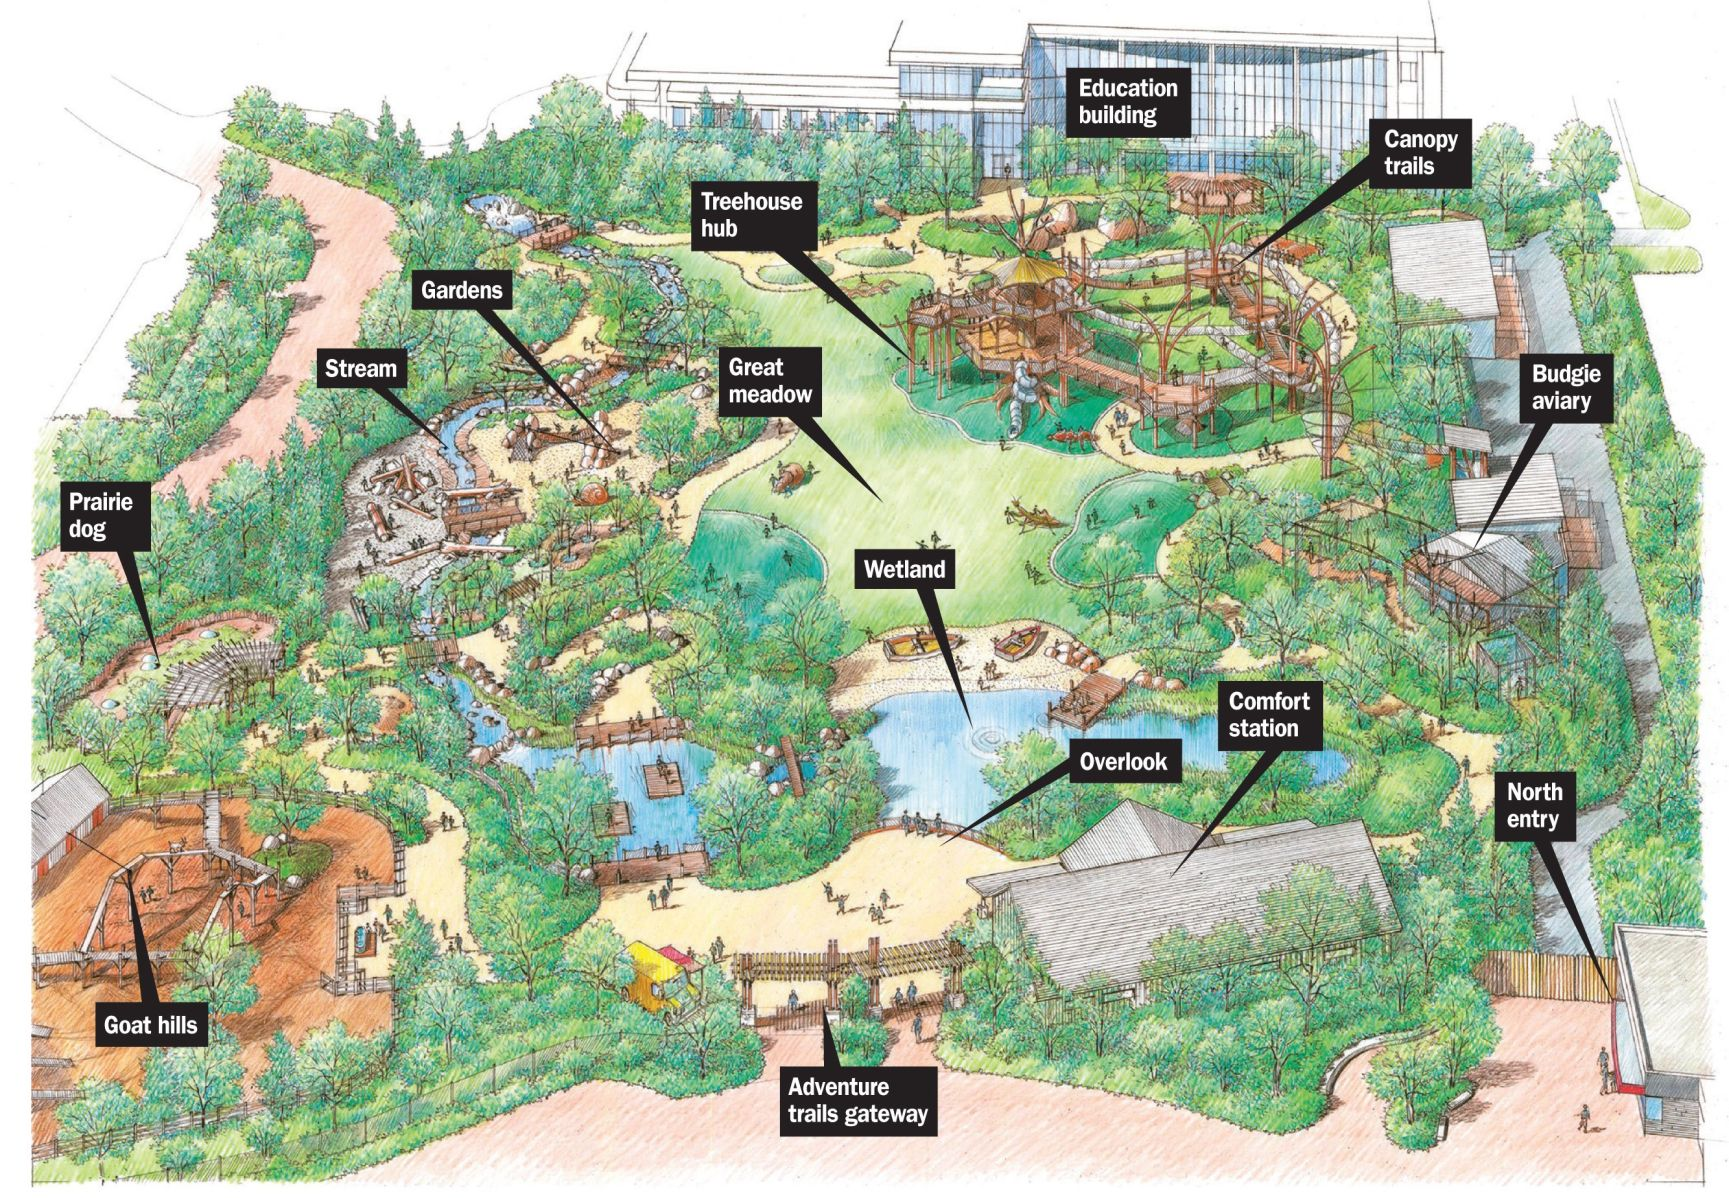 Opening Friday at the Omaha zoo Childrens Adventure Trails where